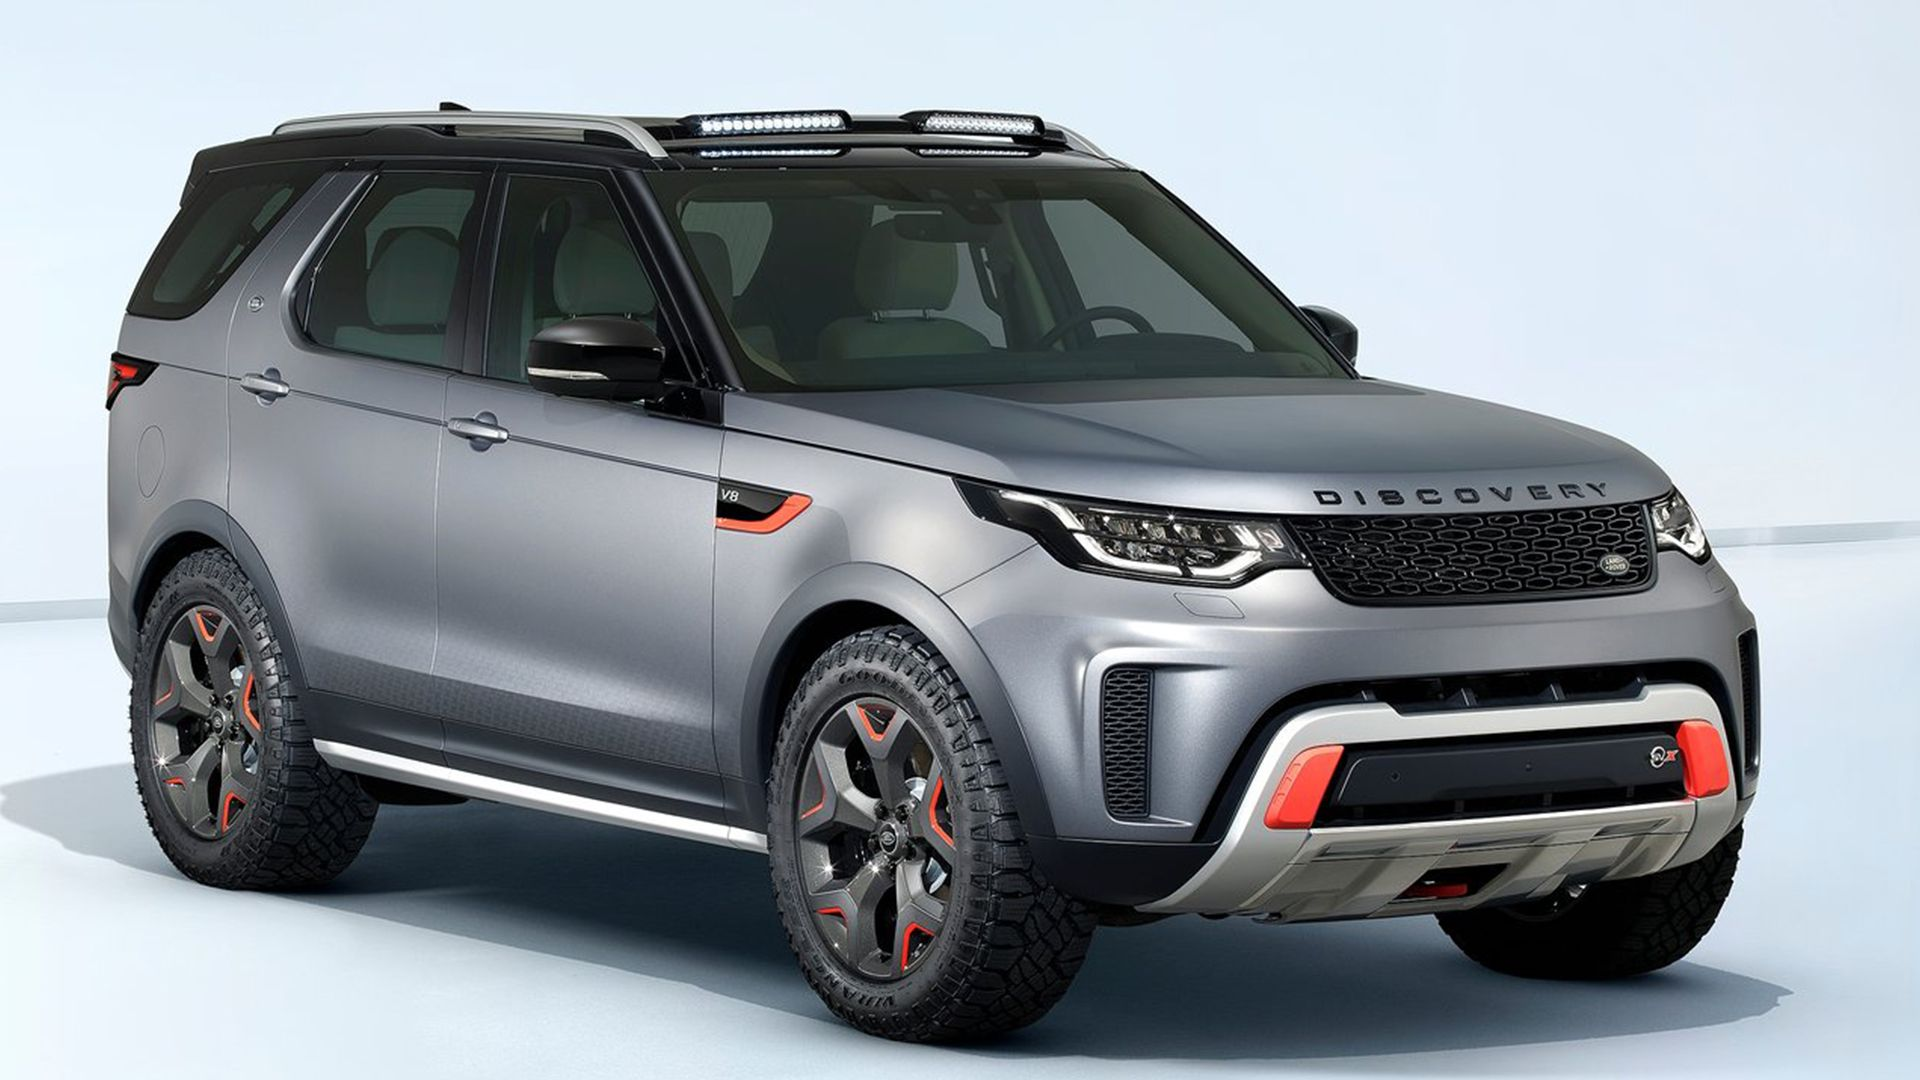 2018 Land Rover Discovery OffRoad SUV